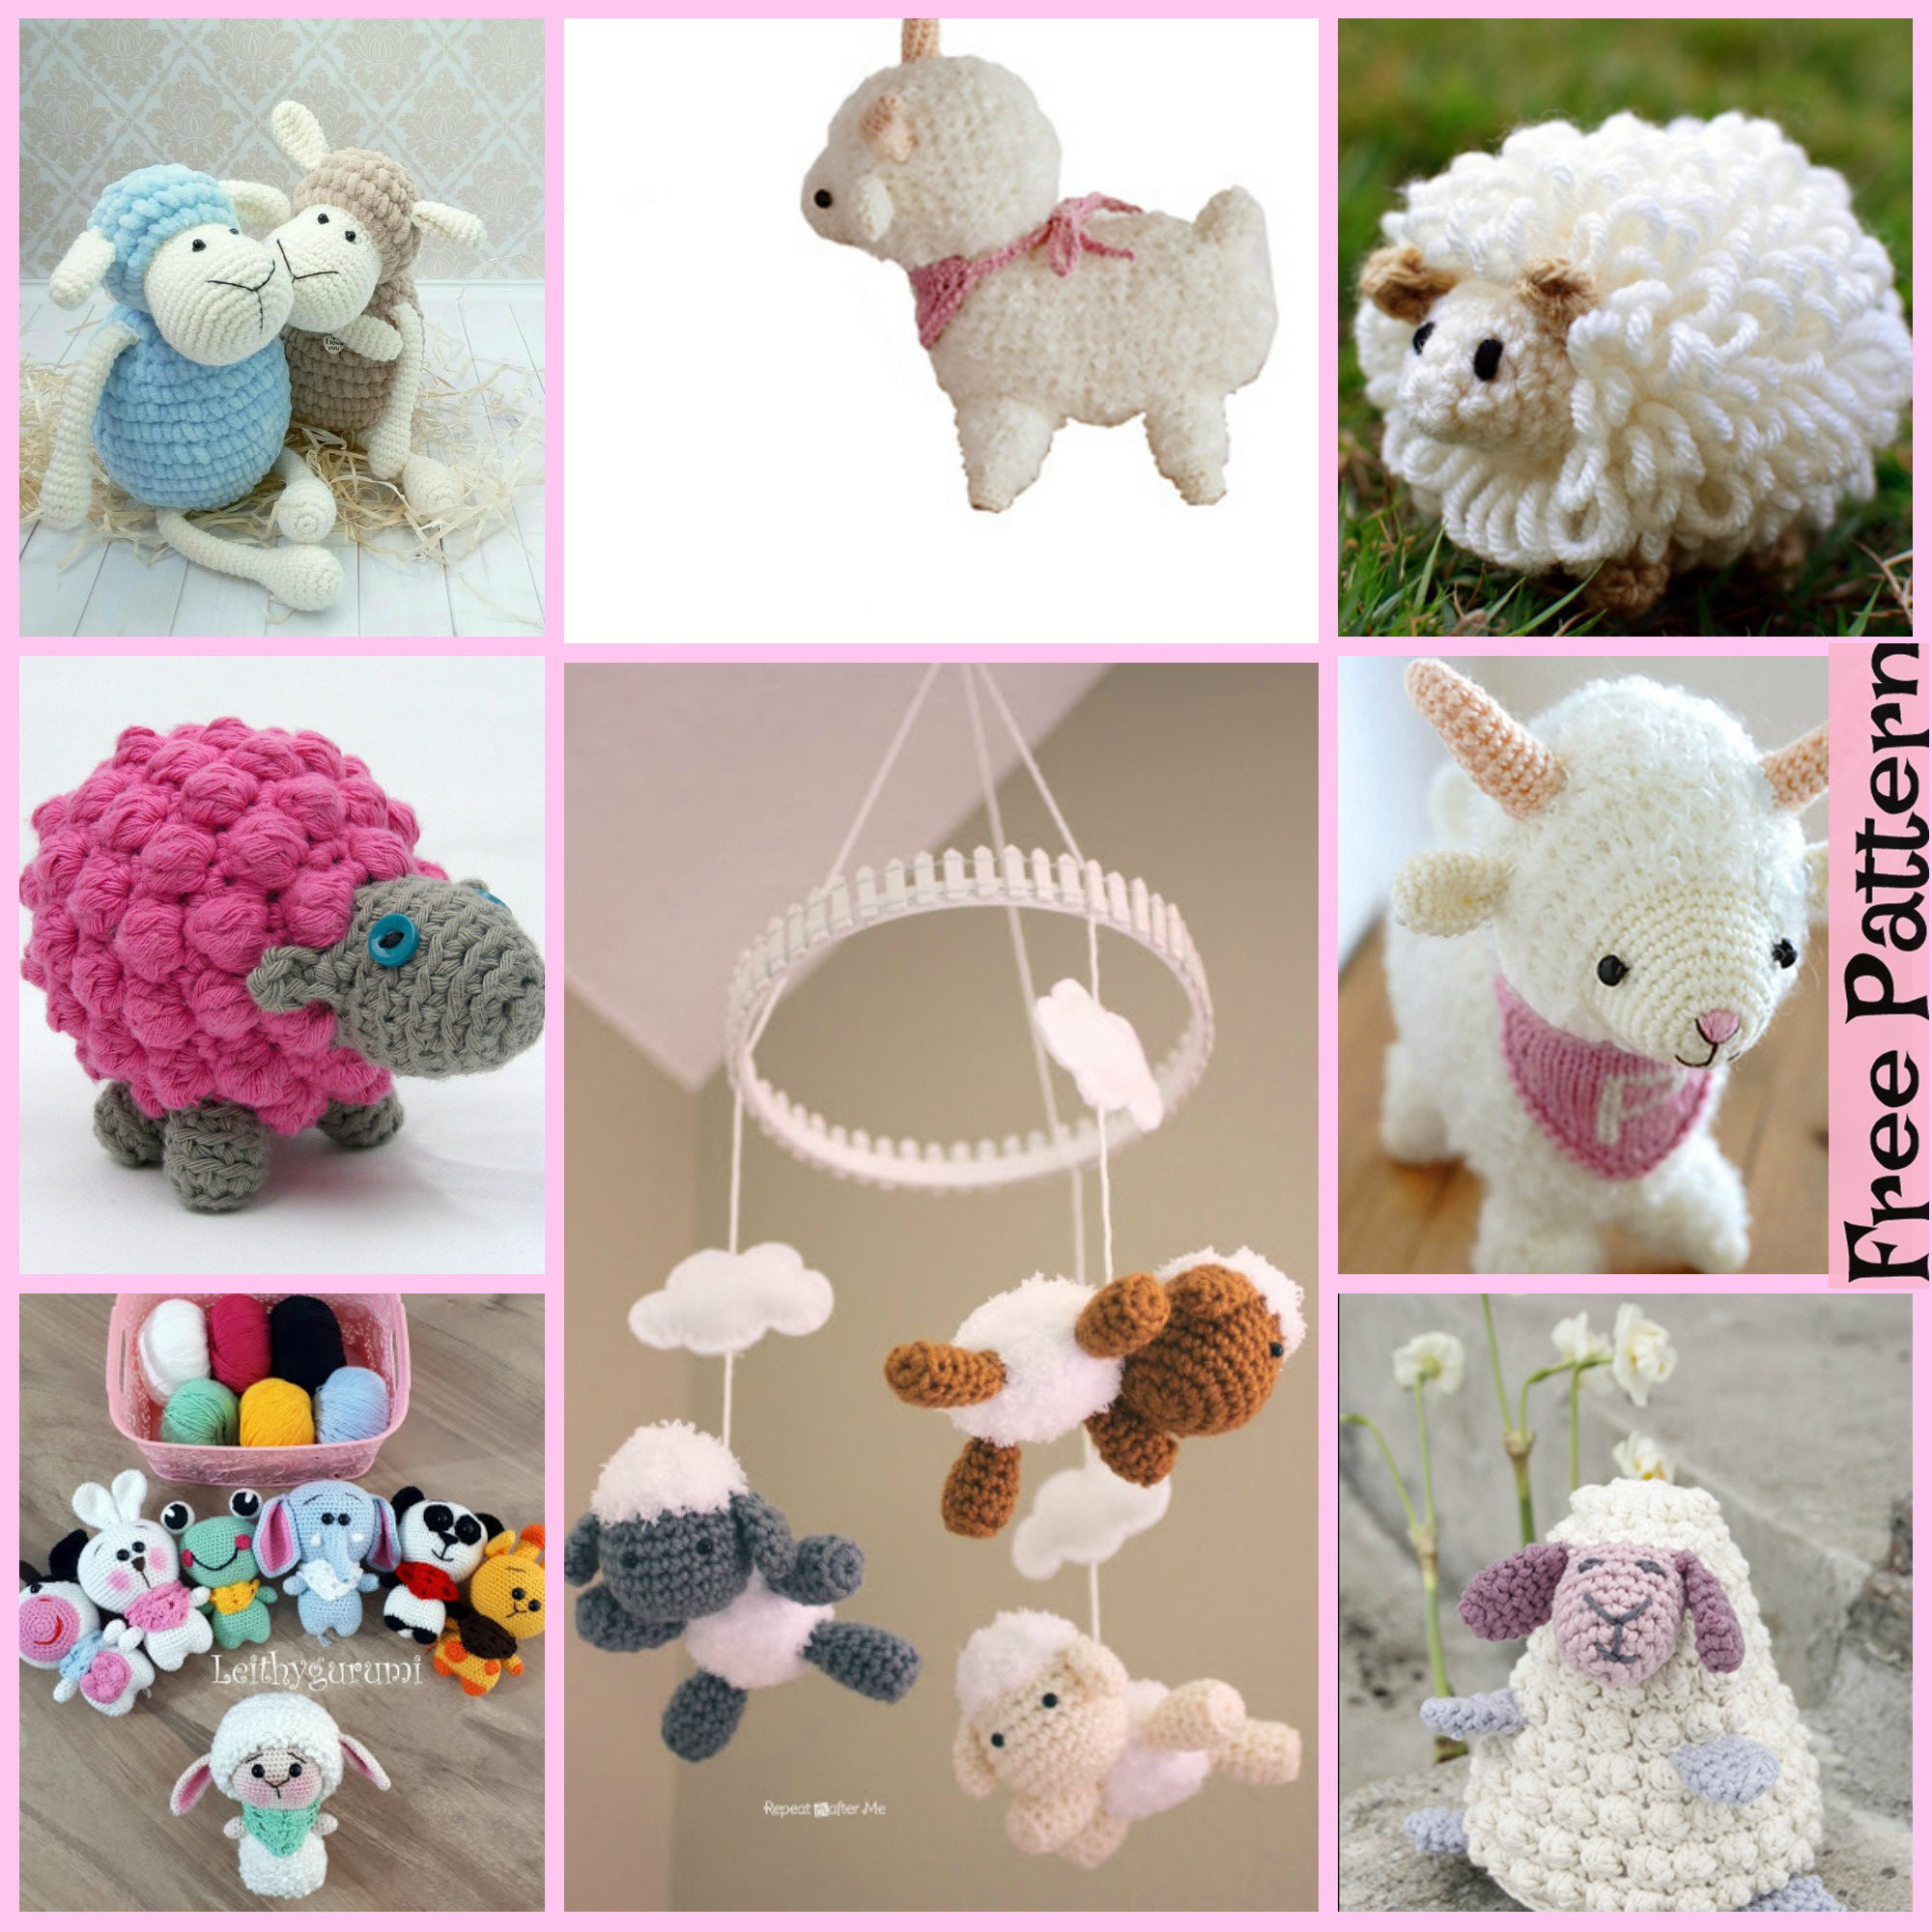 Amigurumi sheep plush toy pattern - Amigurumi Today | 2000x2000